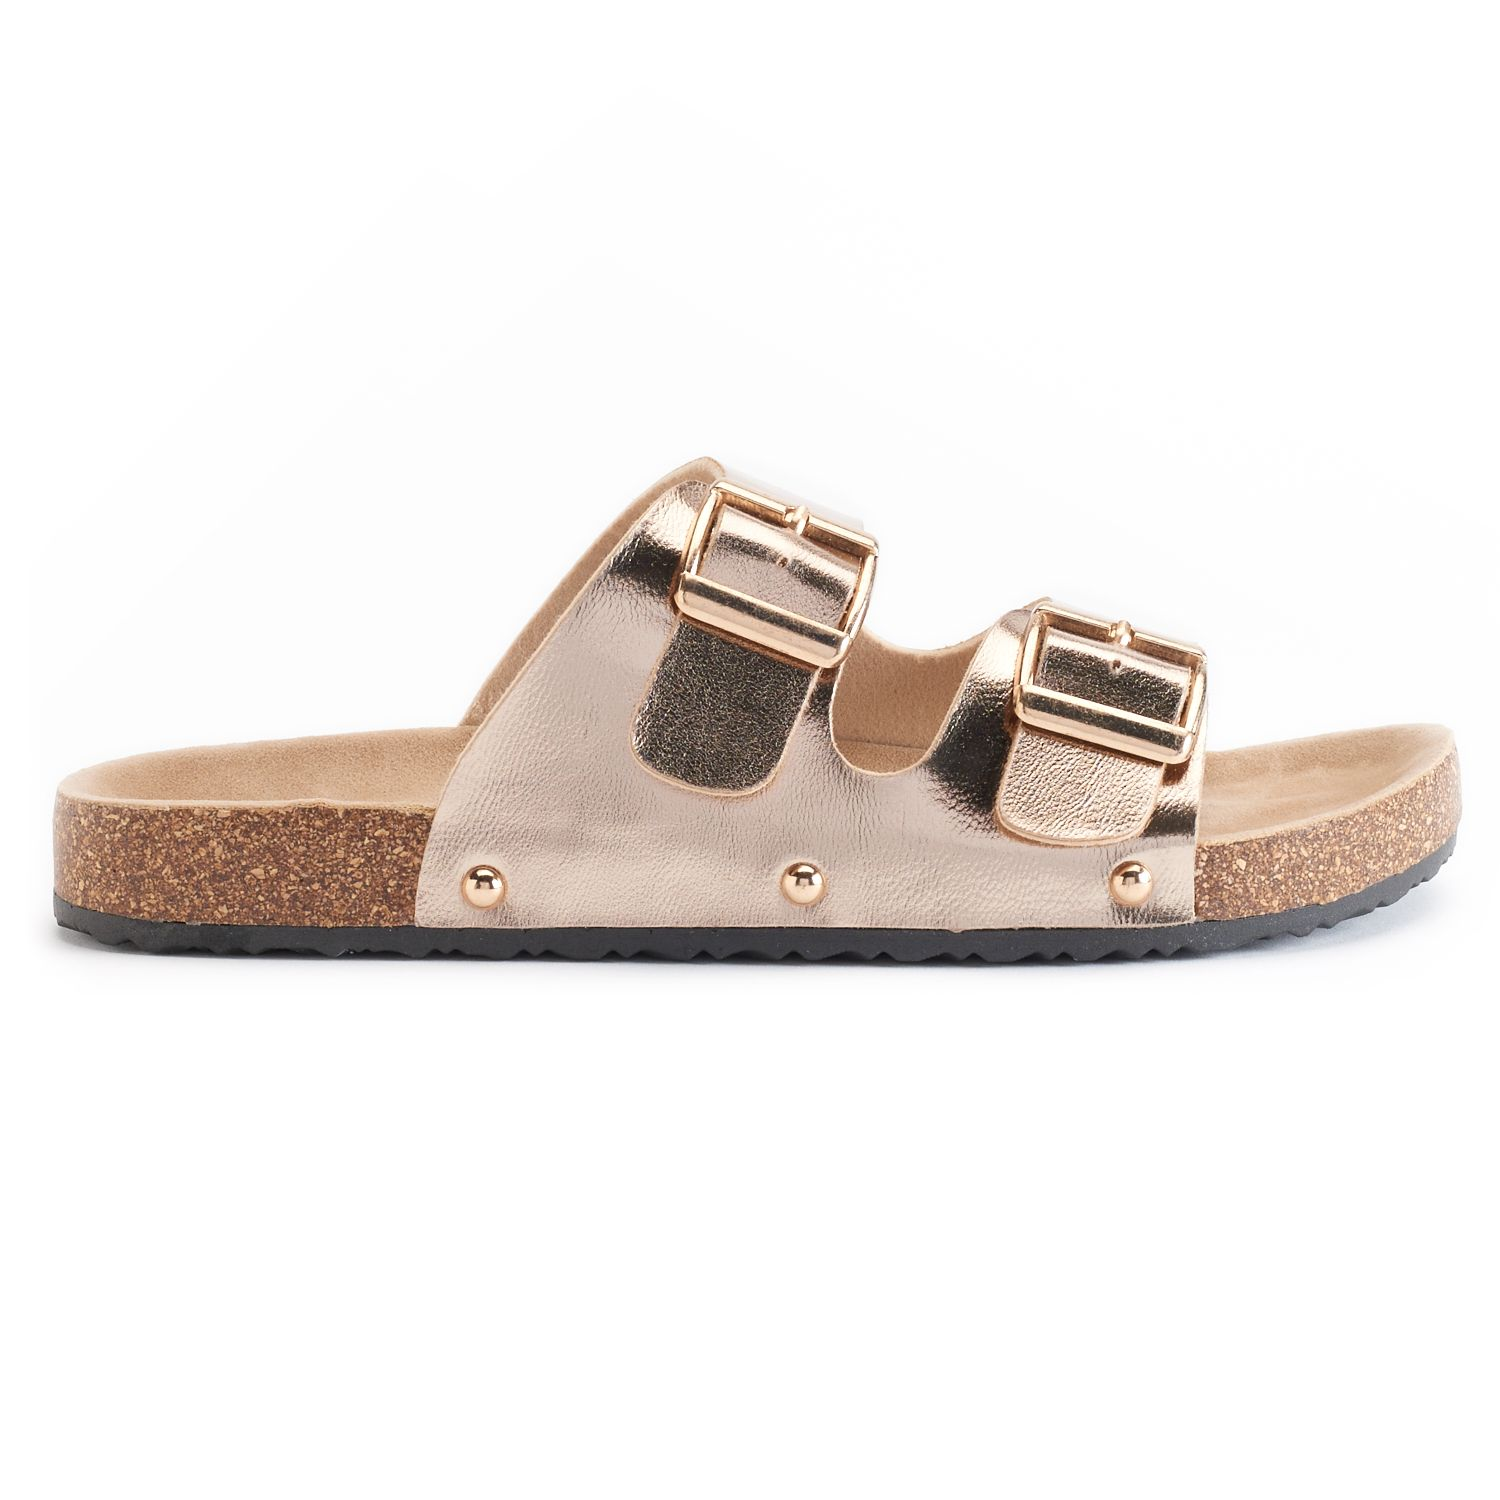 6597fc06658 Womens Mudd Sandals - Shoes